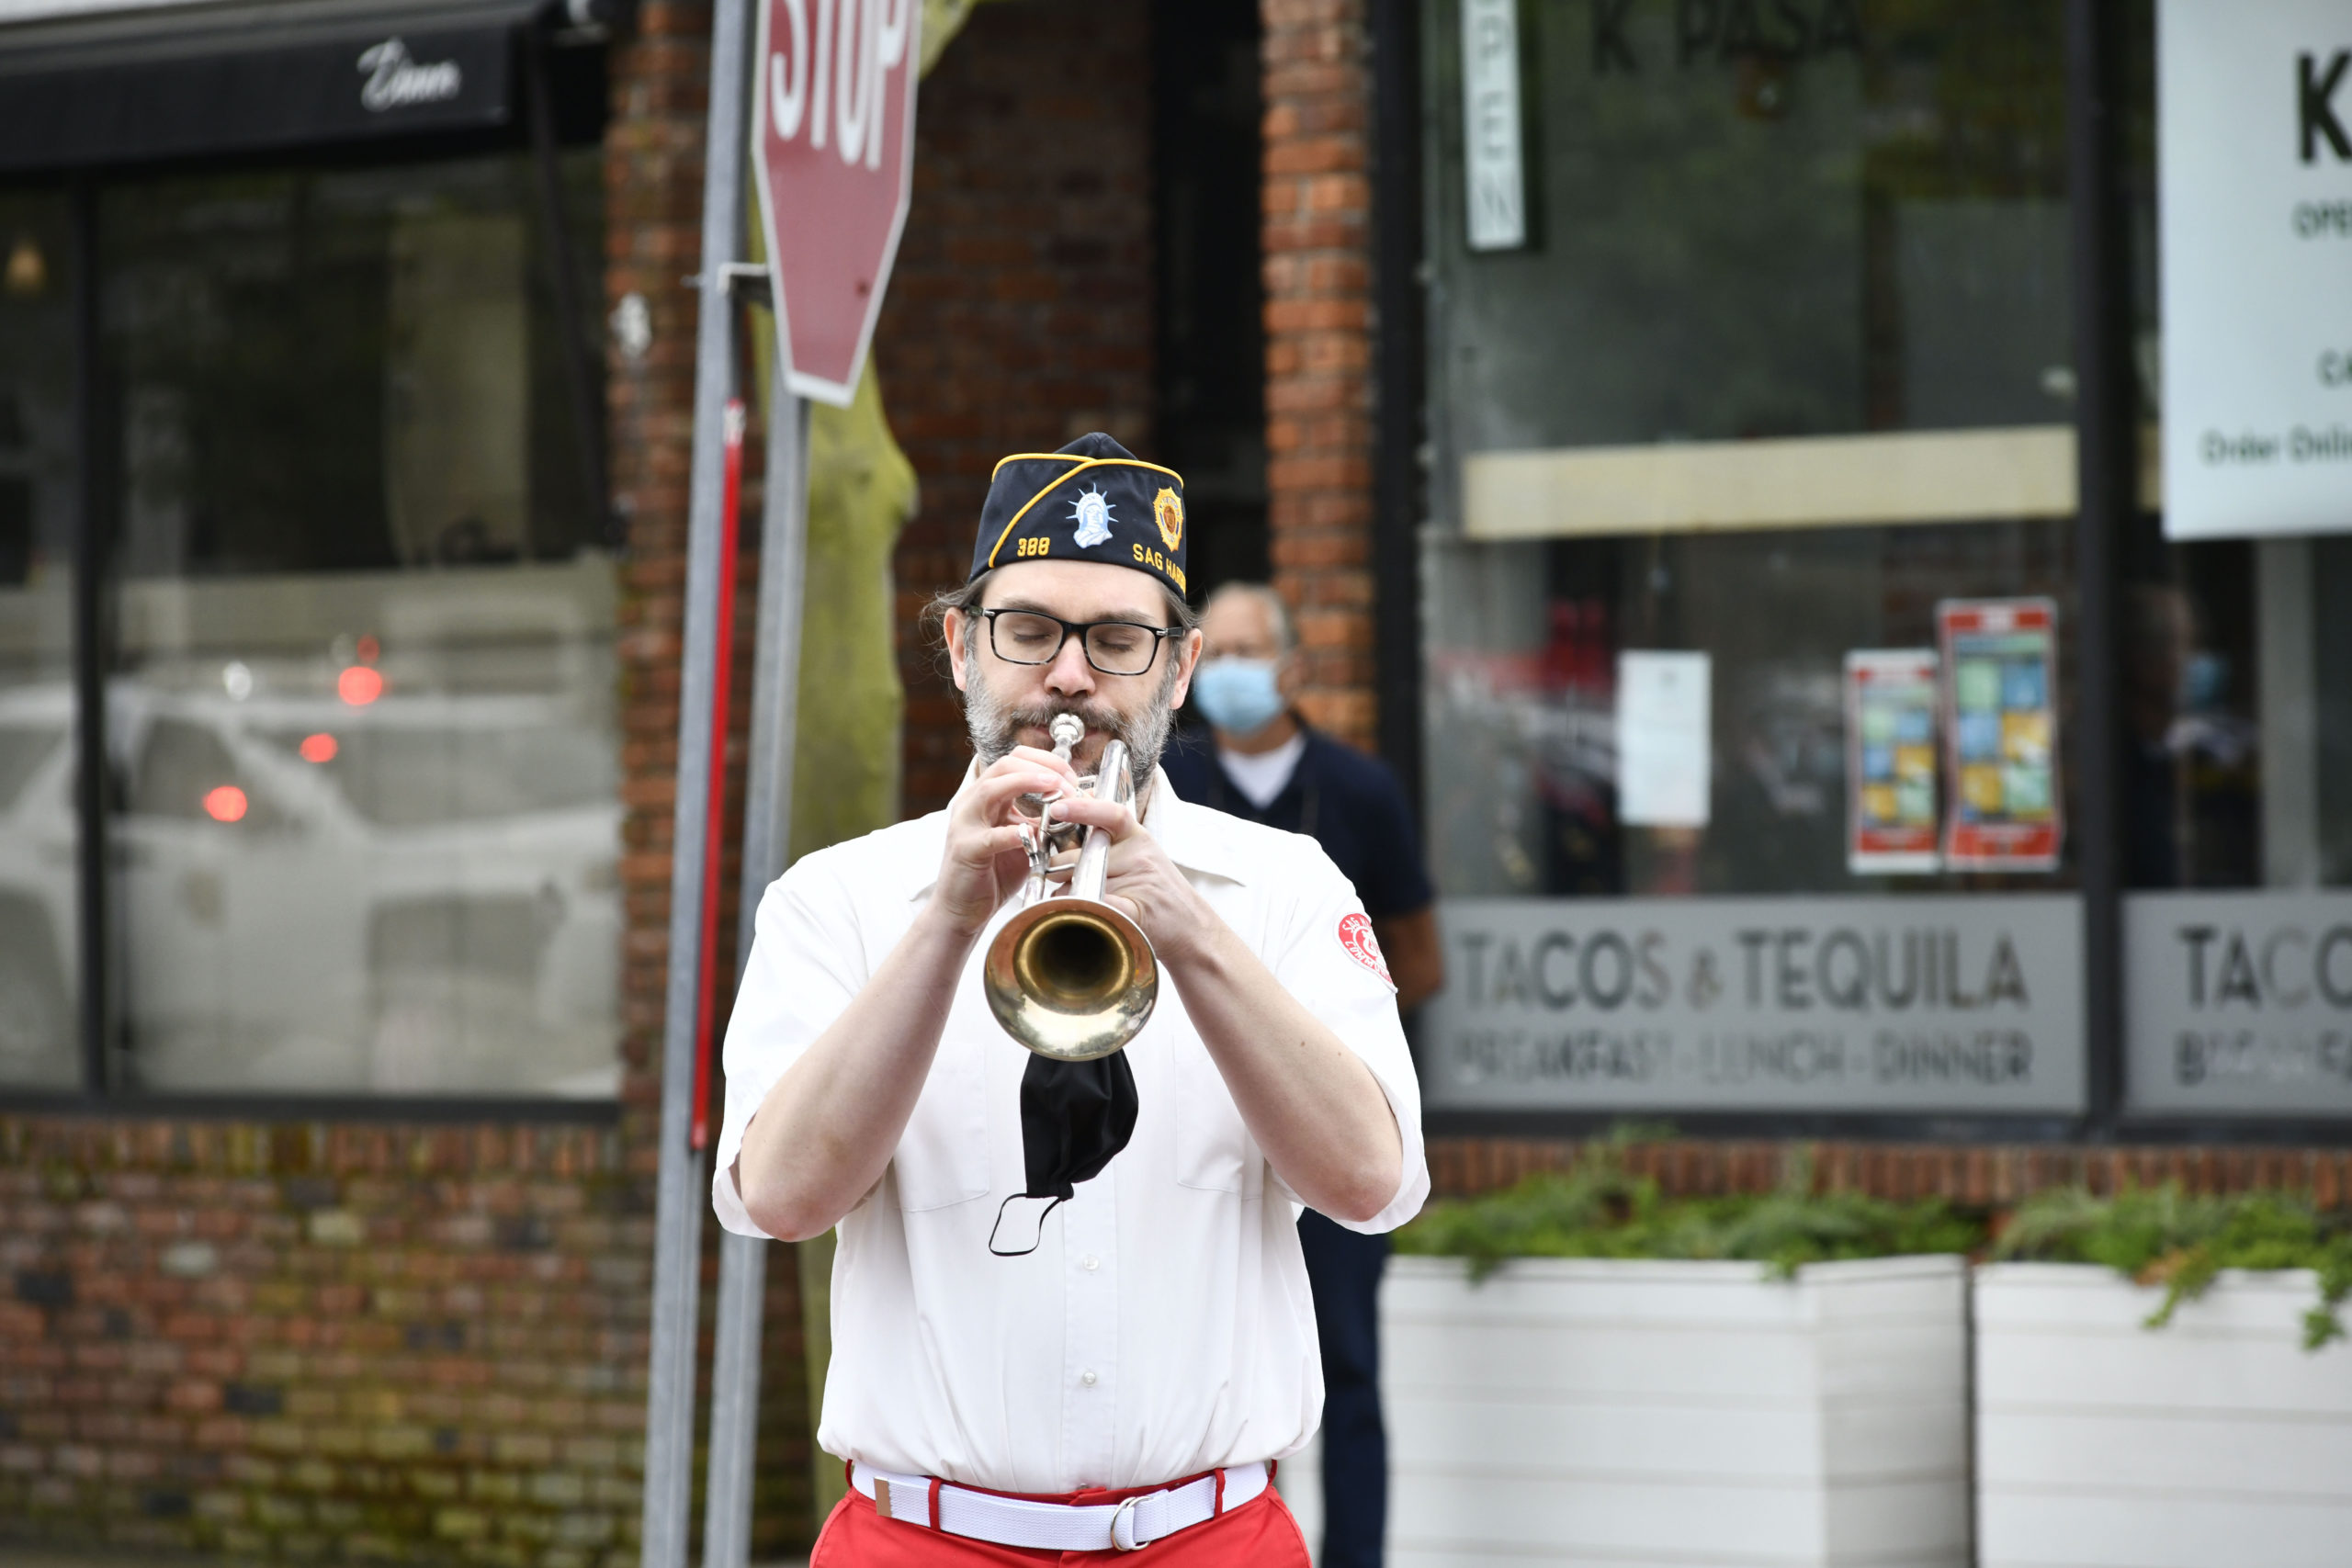 Alex Huberty plays Taps during Memorial Day observances in Sag Harbor on Monday.